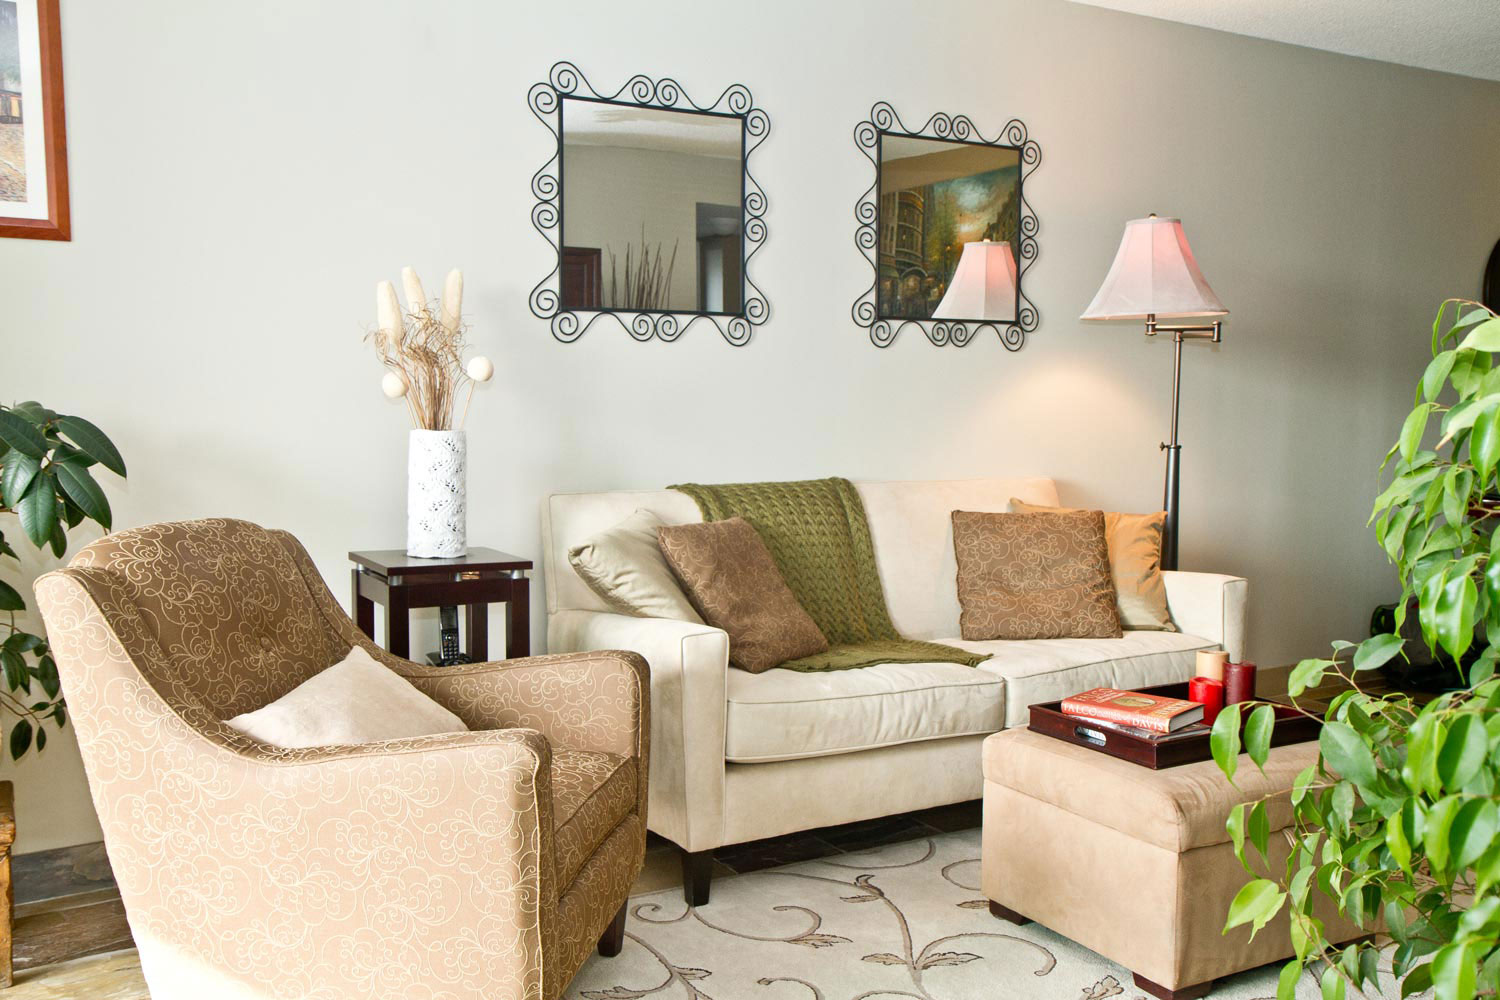 Real-Estate-Photography-Living-Room-2-1500x1000.jpg